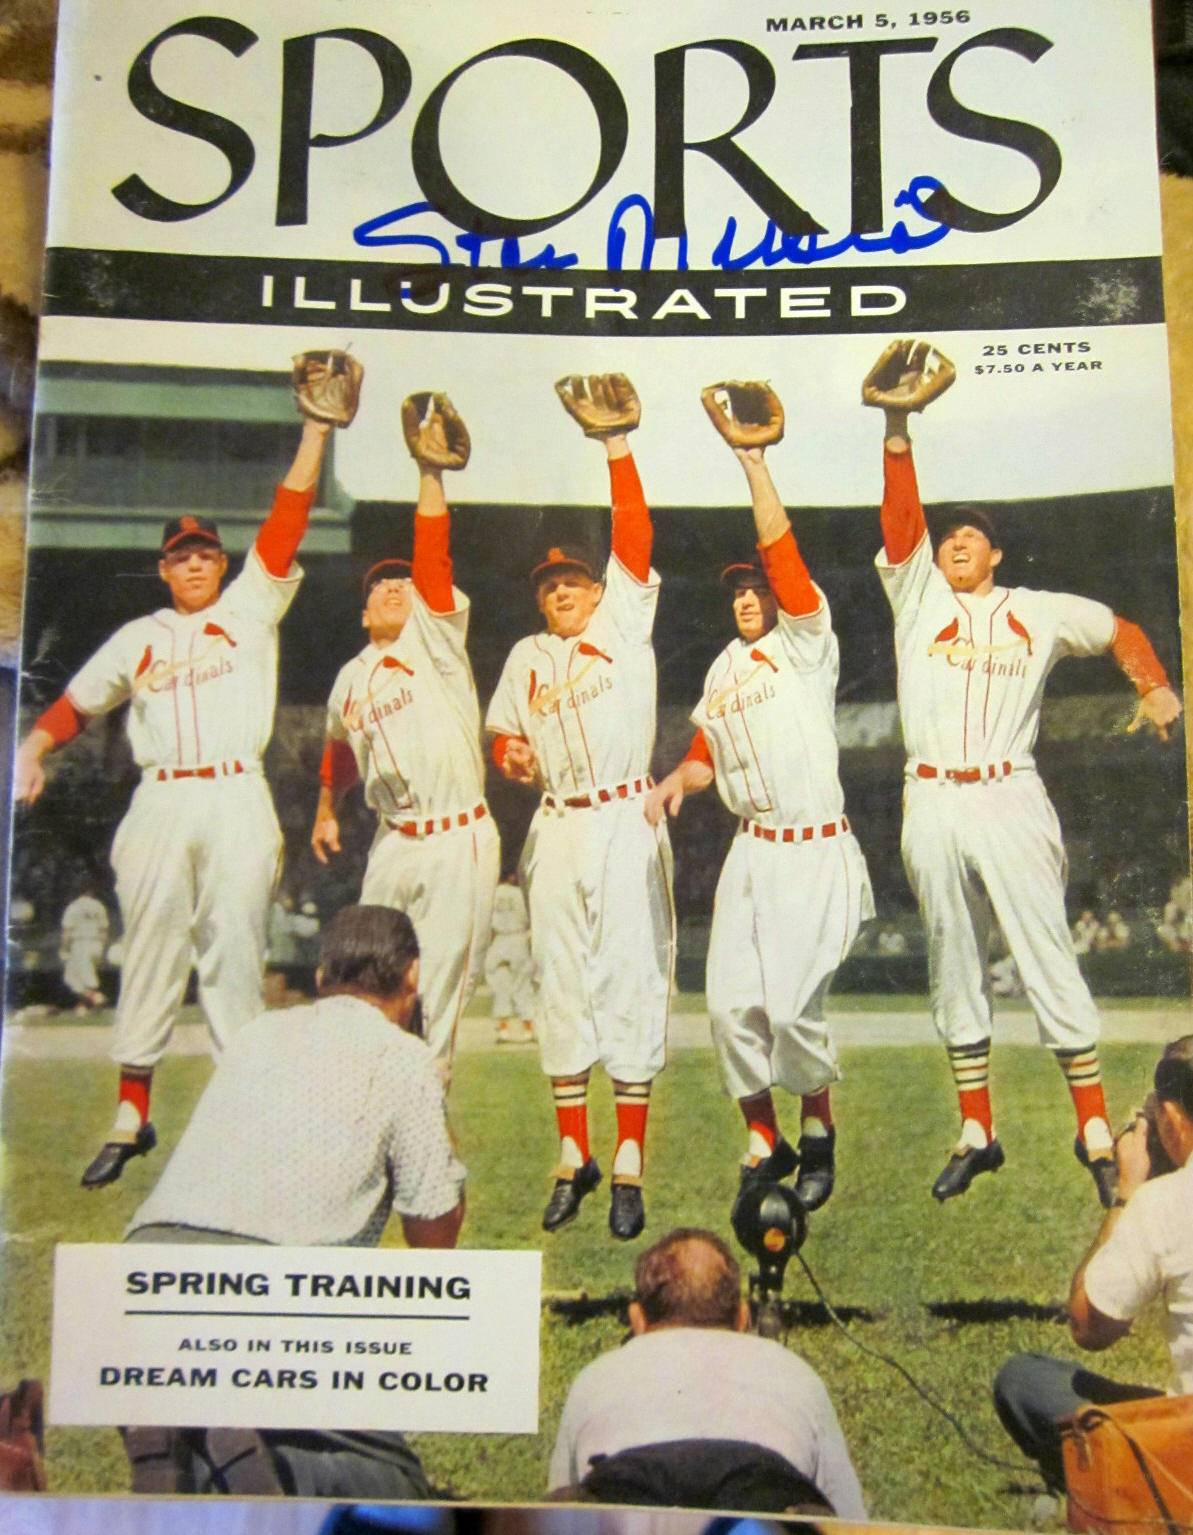 STAN MUSIAL SIGNED ORIGINAL MARCH 5, 1956 SPORTS ILLUSTRATED IP PHOTO PROOF